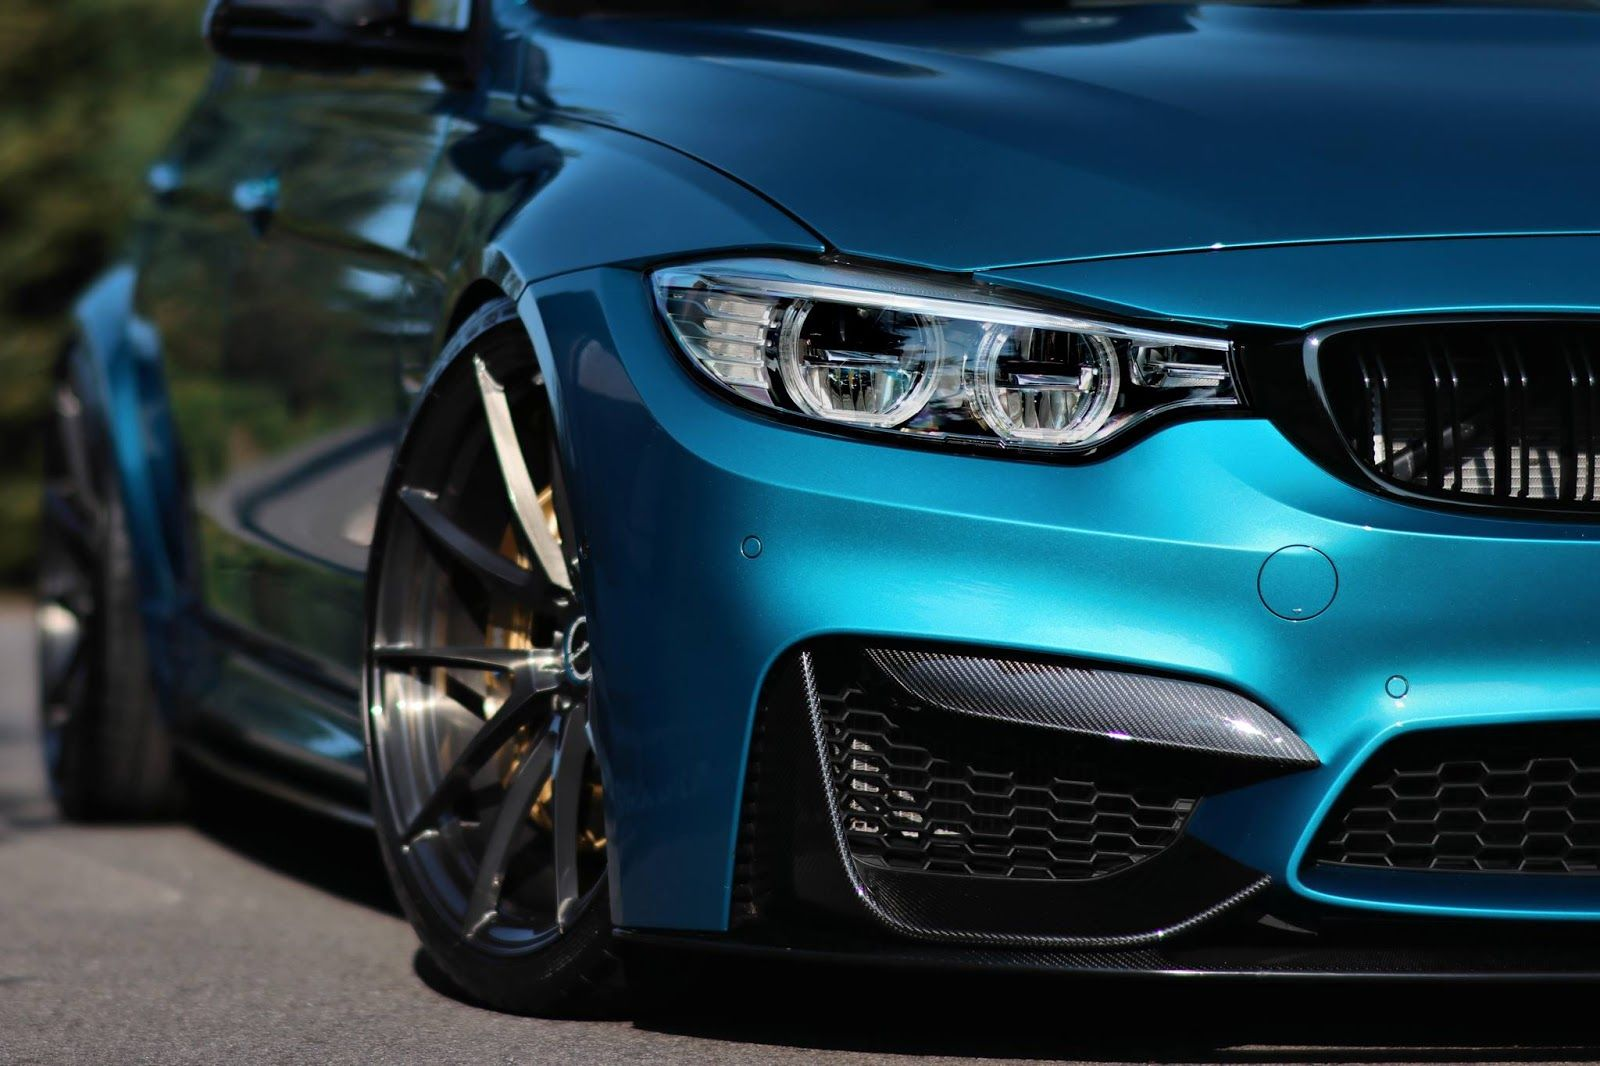 Canadian Bmw M3 Individual With Carbon Add Ones Looks The Part Carscoops Bmw M3 Bmw Wallpaper Bmw